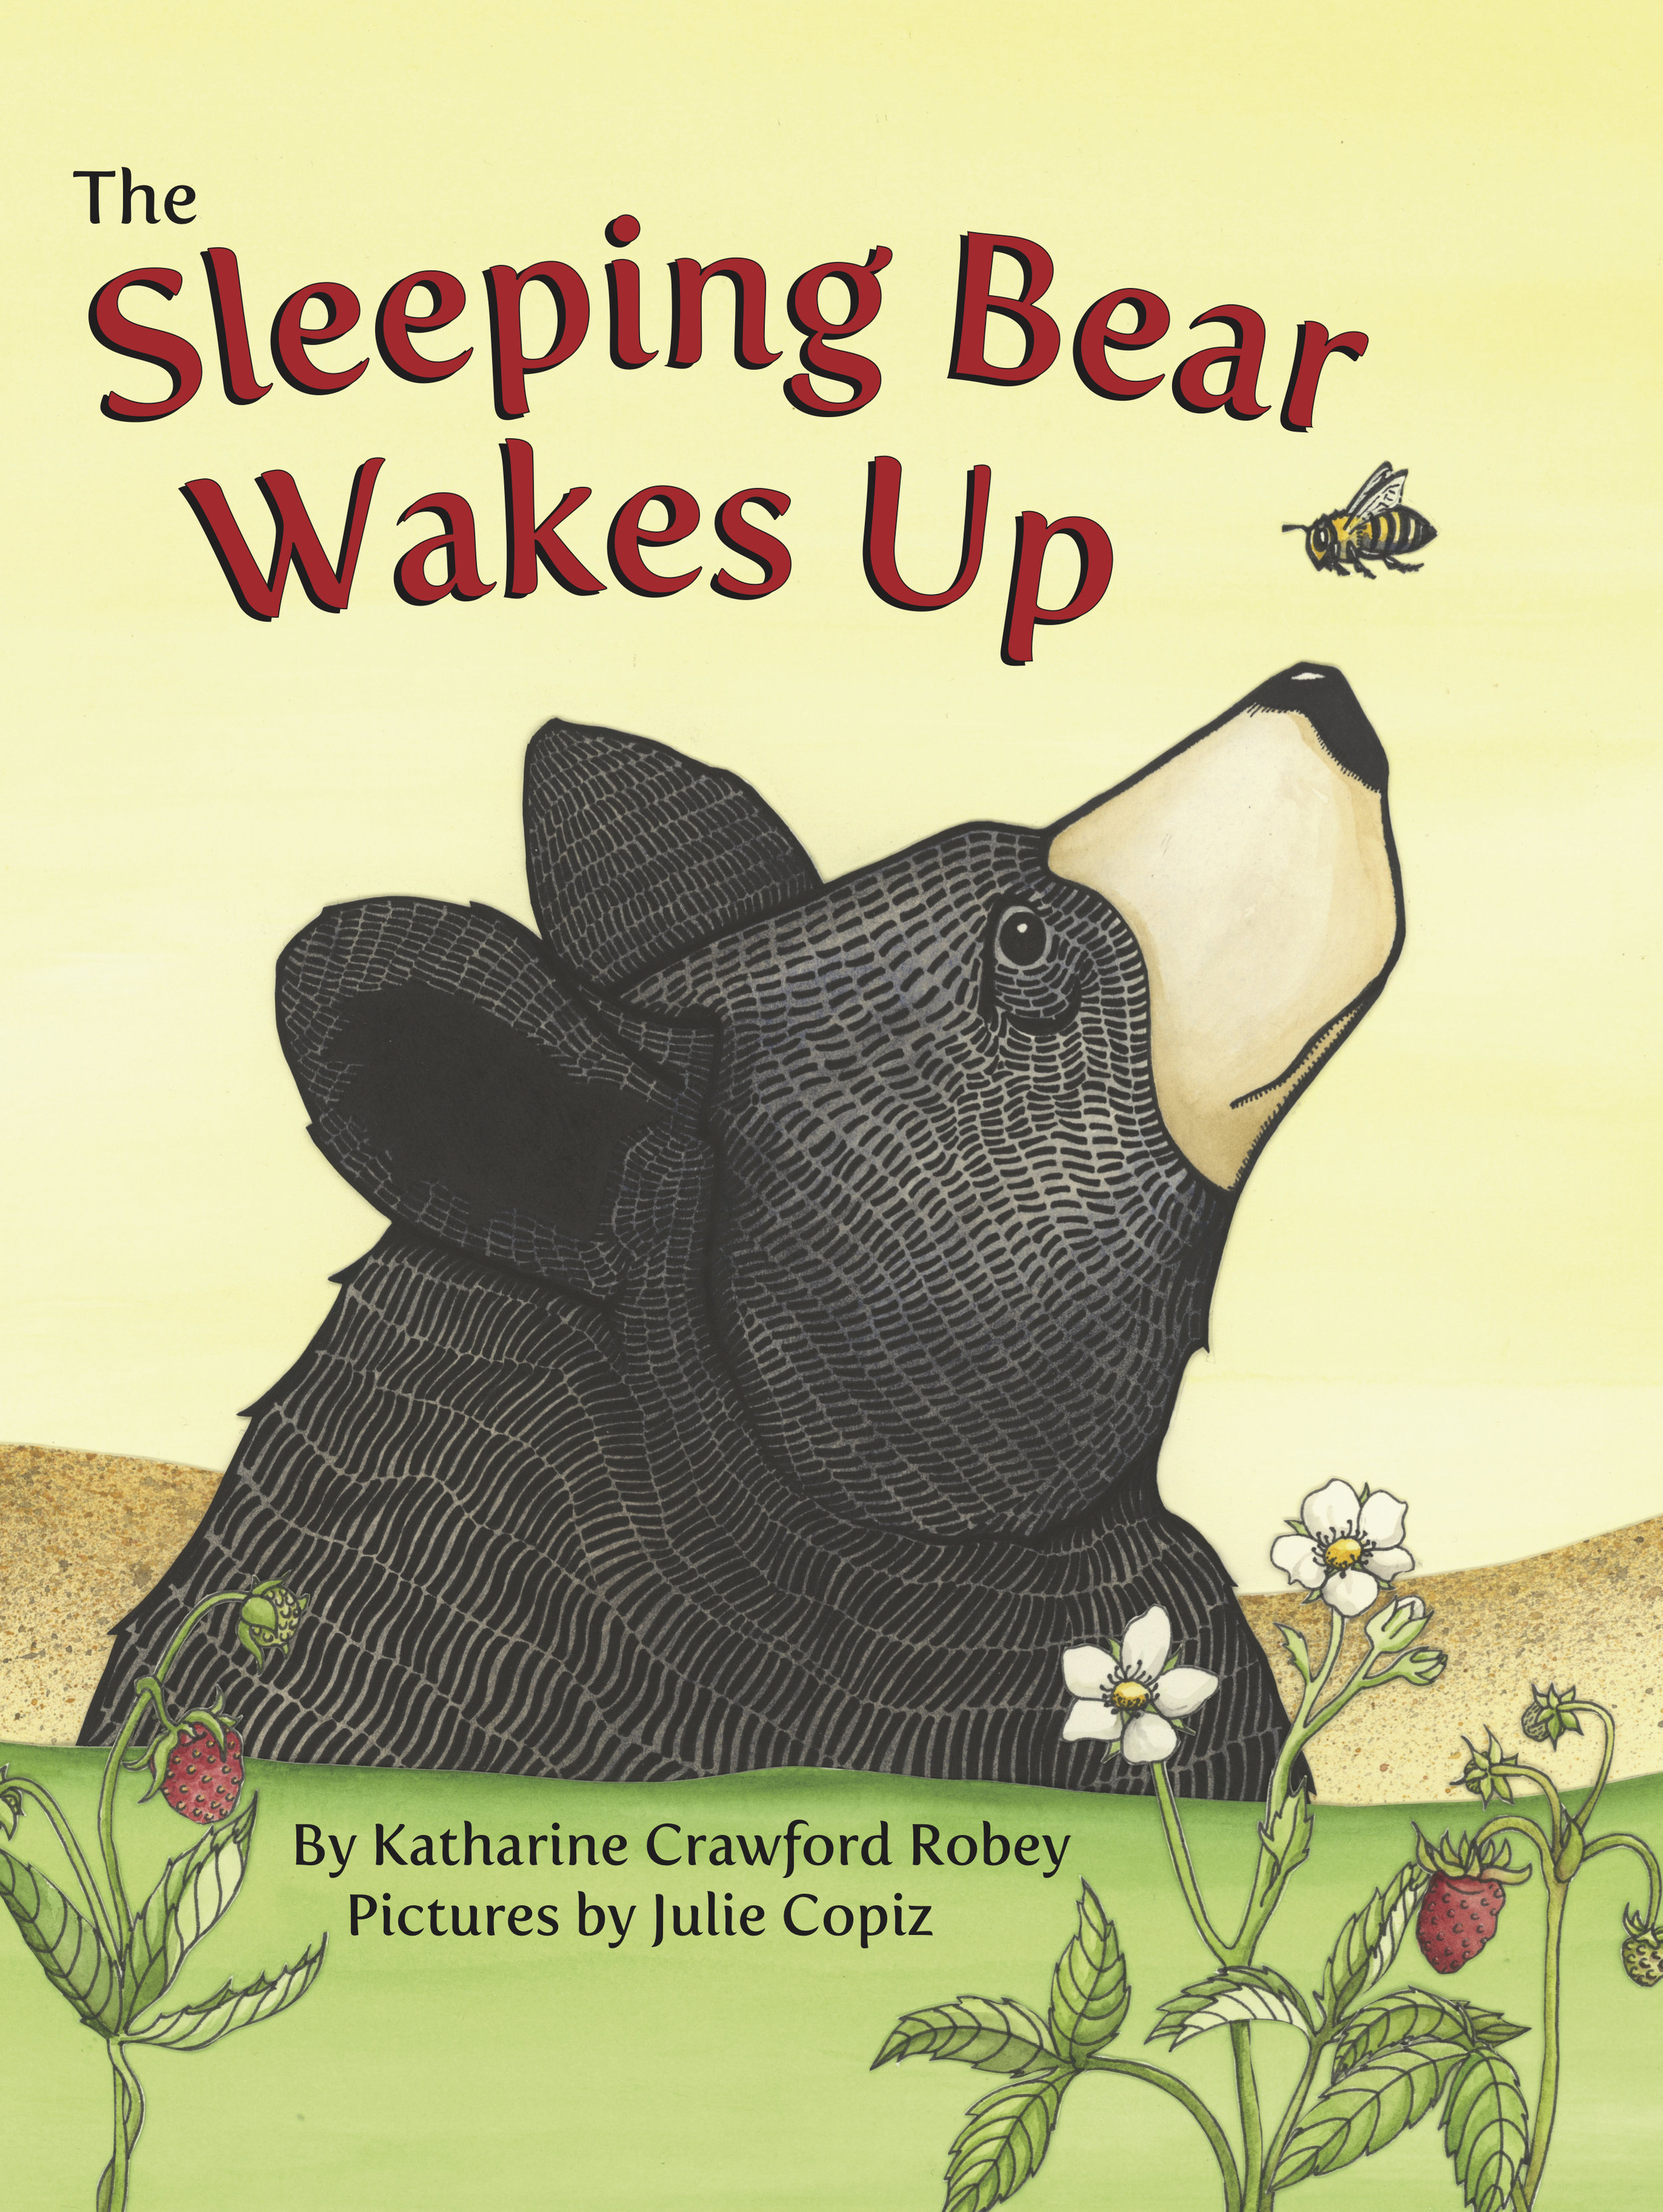 - The Sleeping Bear Wakes Upis a sequel to the famous Native American legend. This book, with its beautiful illustrations, is sure to be a timeless favorite.More about the bookBuy the book on Amazon